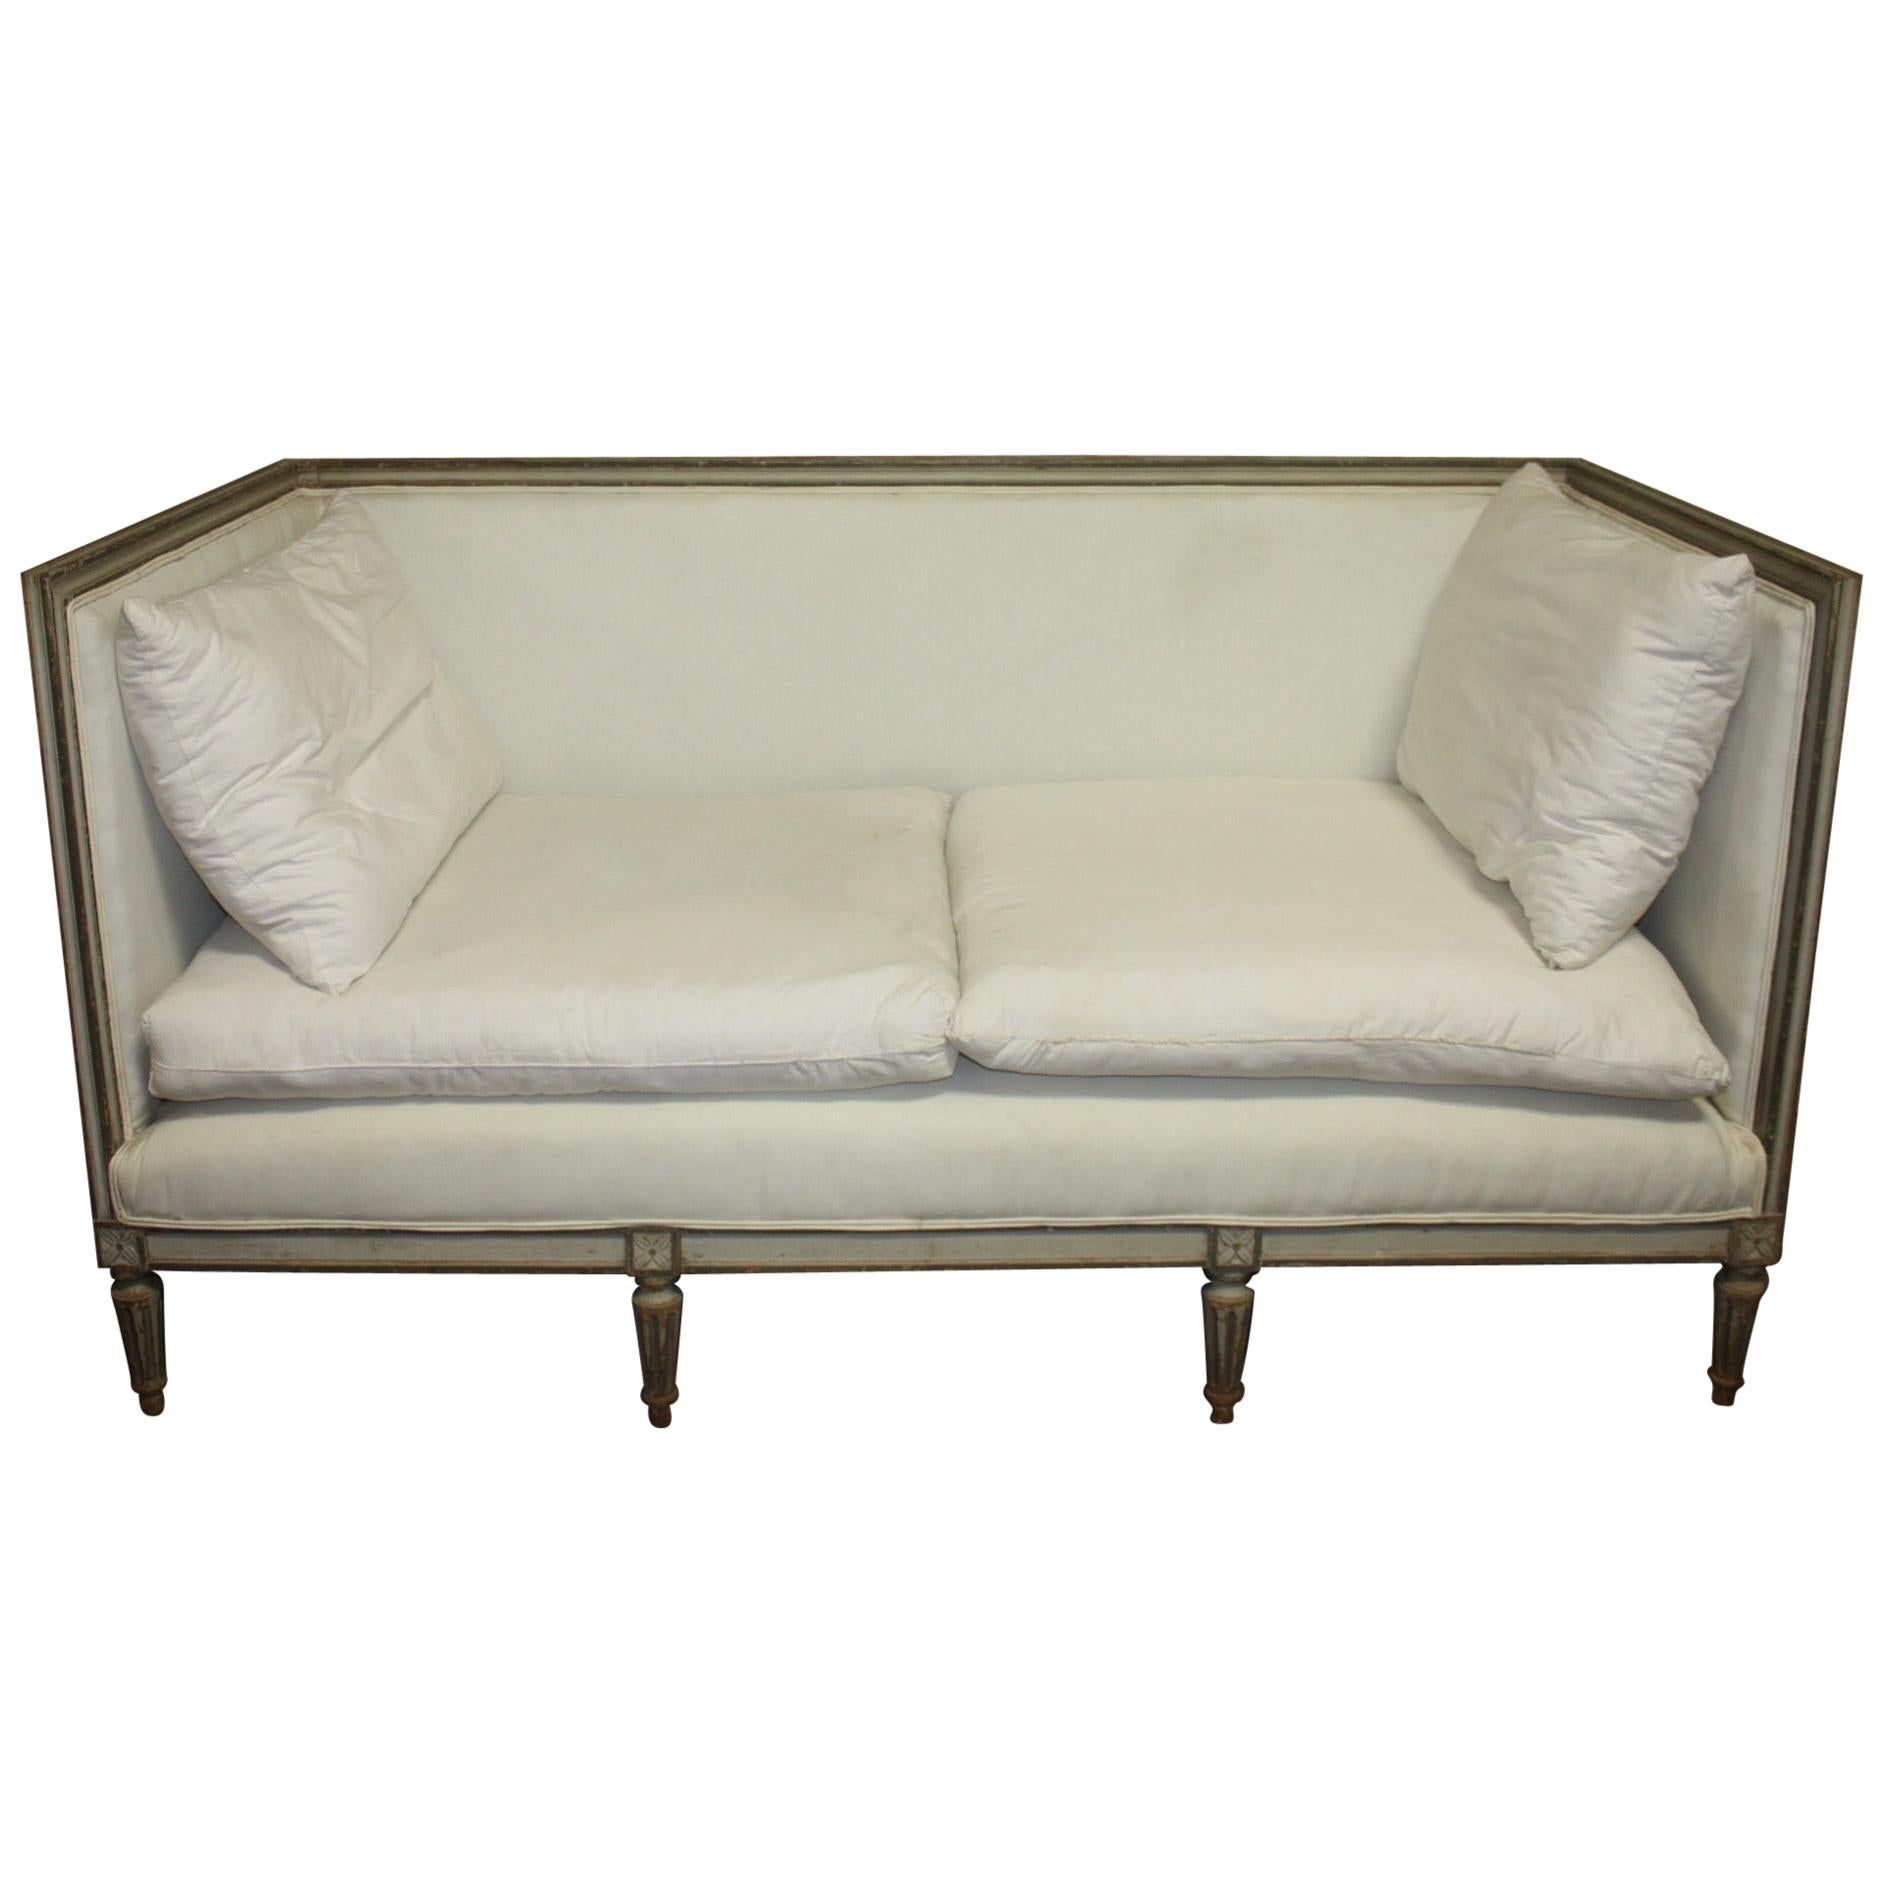 Sublime Early 19th Century French Daybed